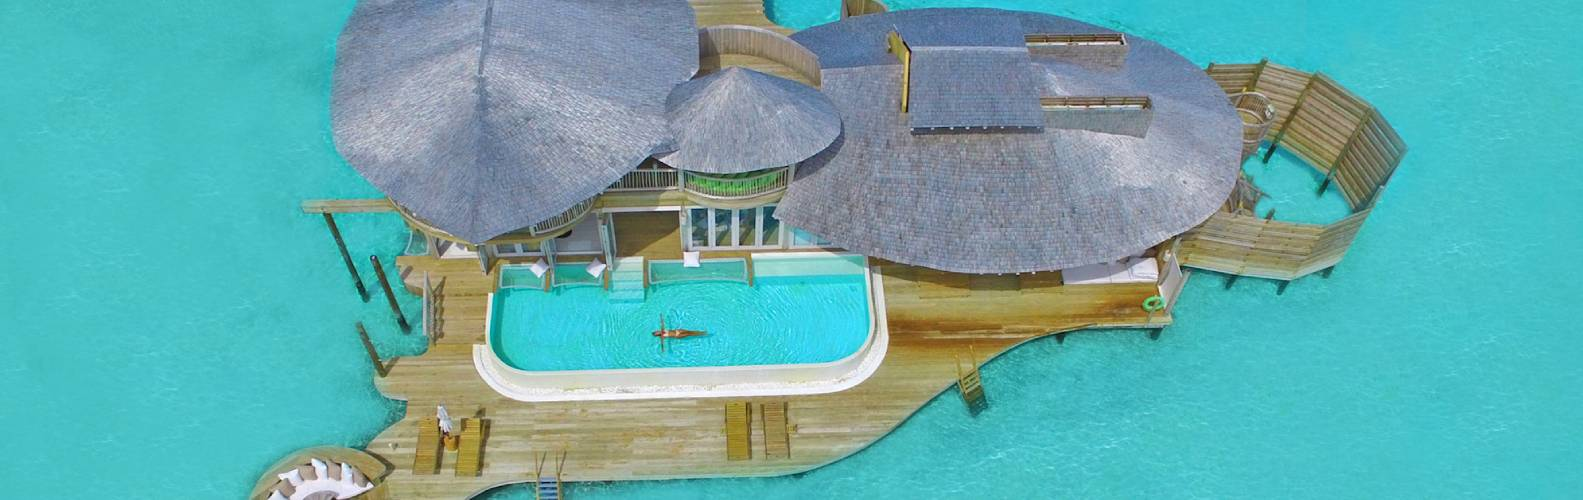 2-Bedroom-Water-Retreat-at-Soneva-Jani